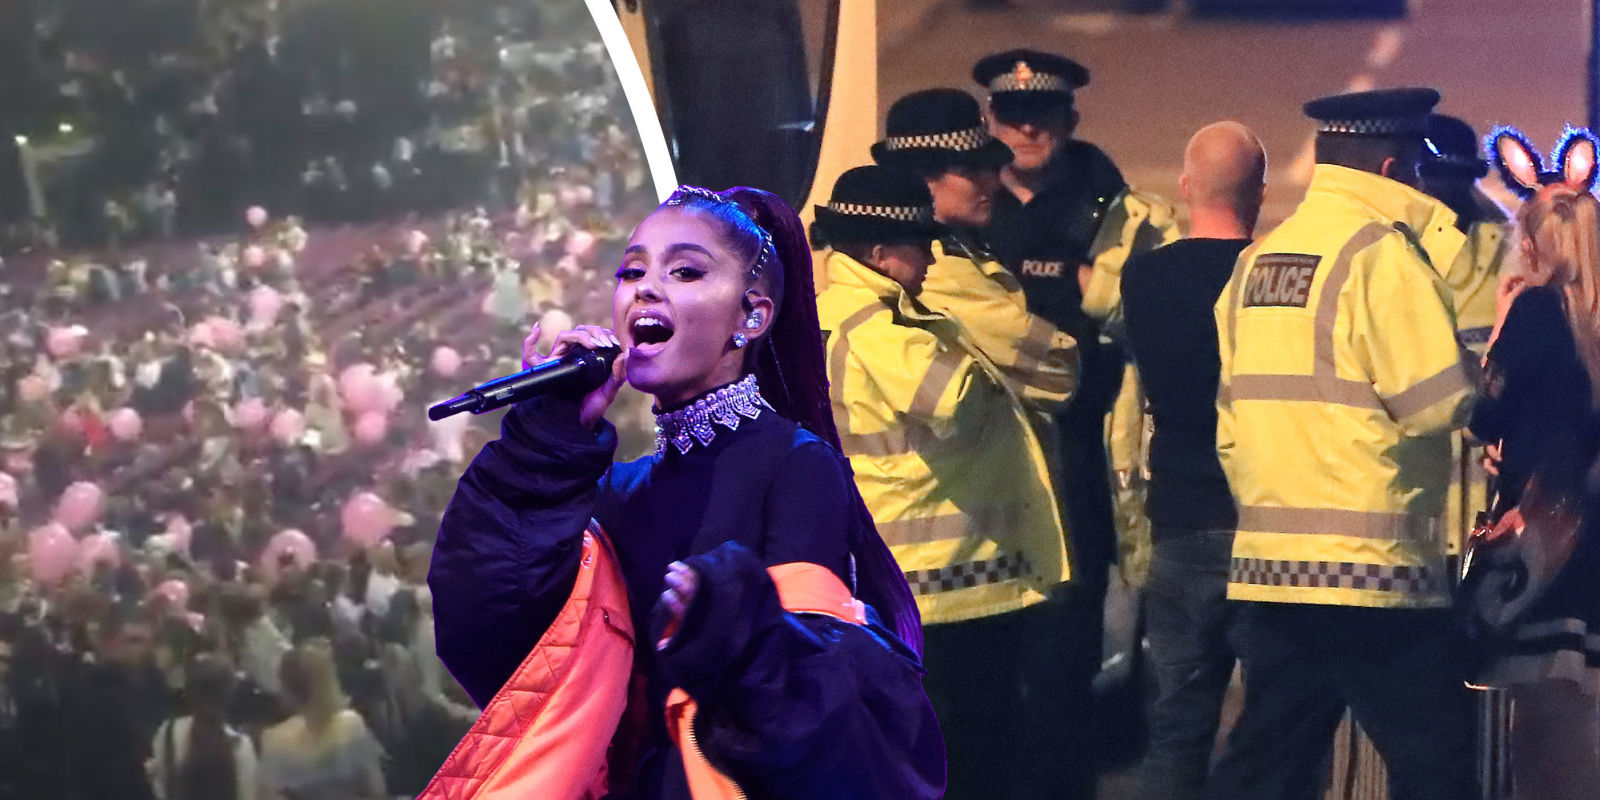 Ariana Grande vows to return to Manchester after attack